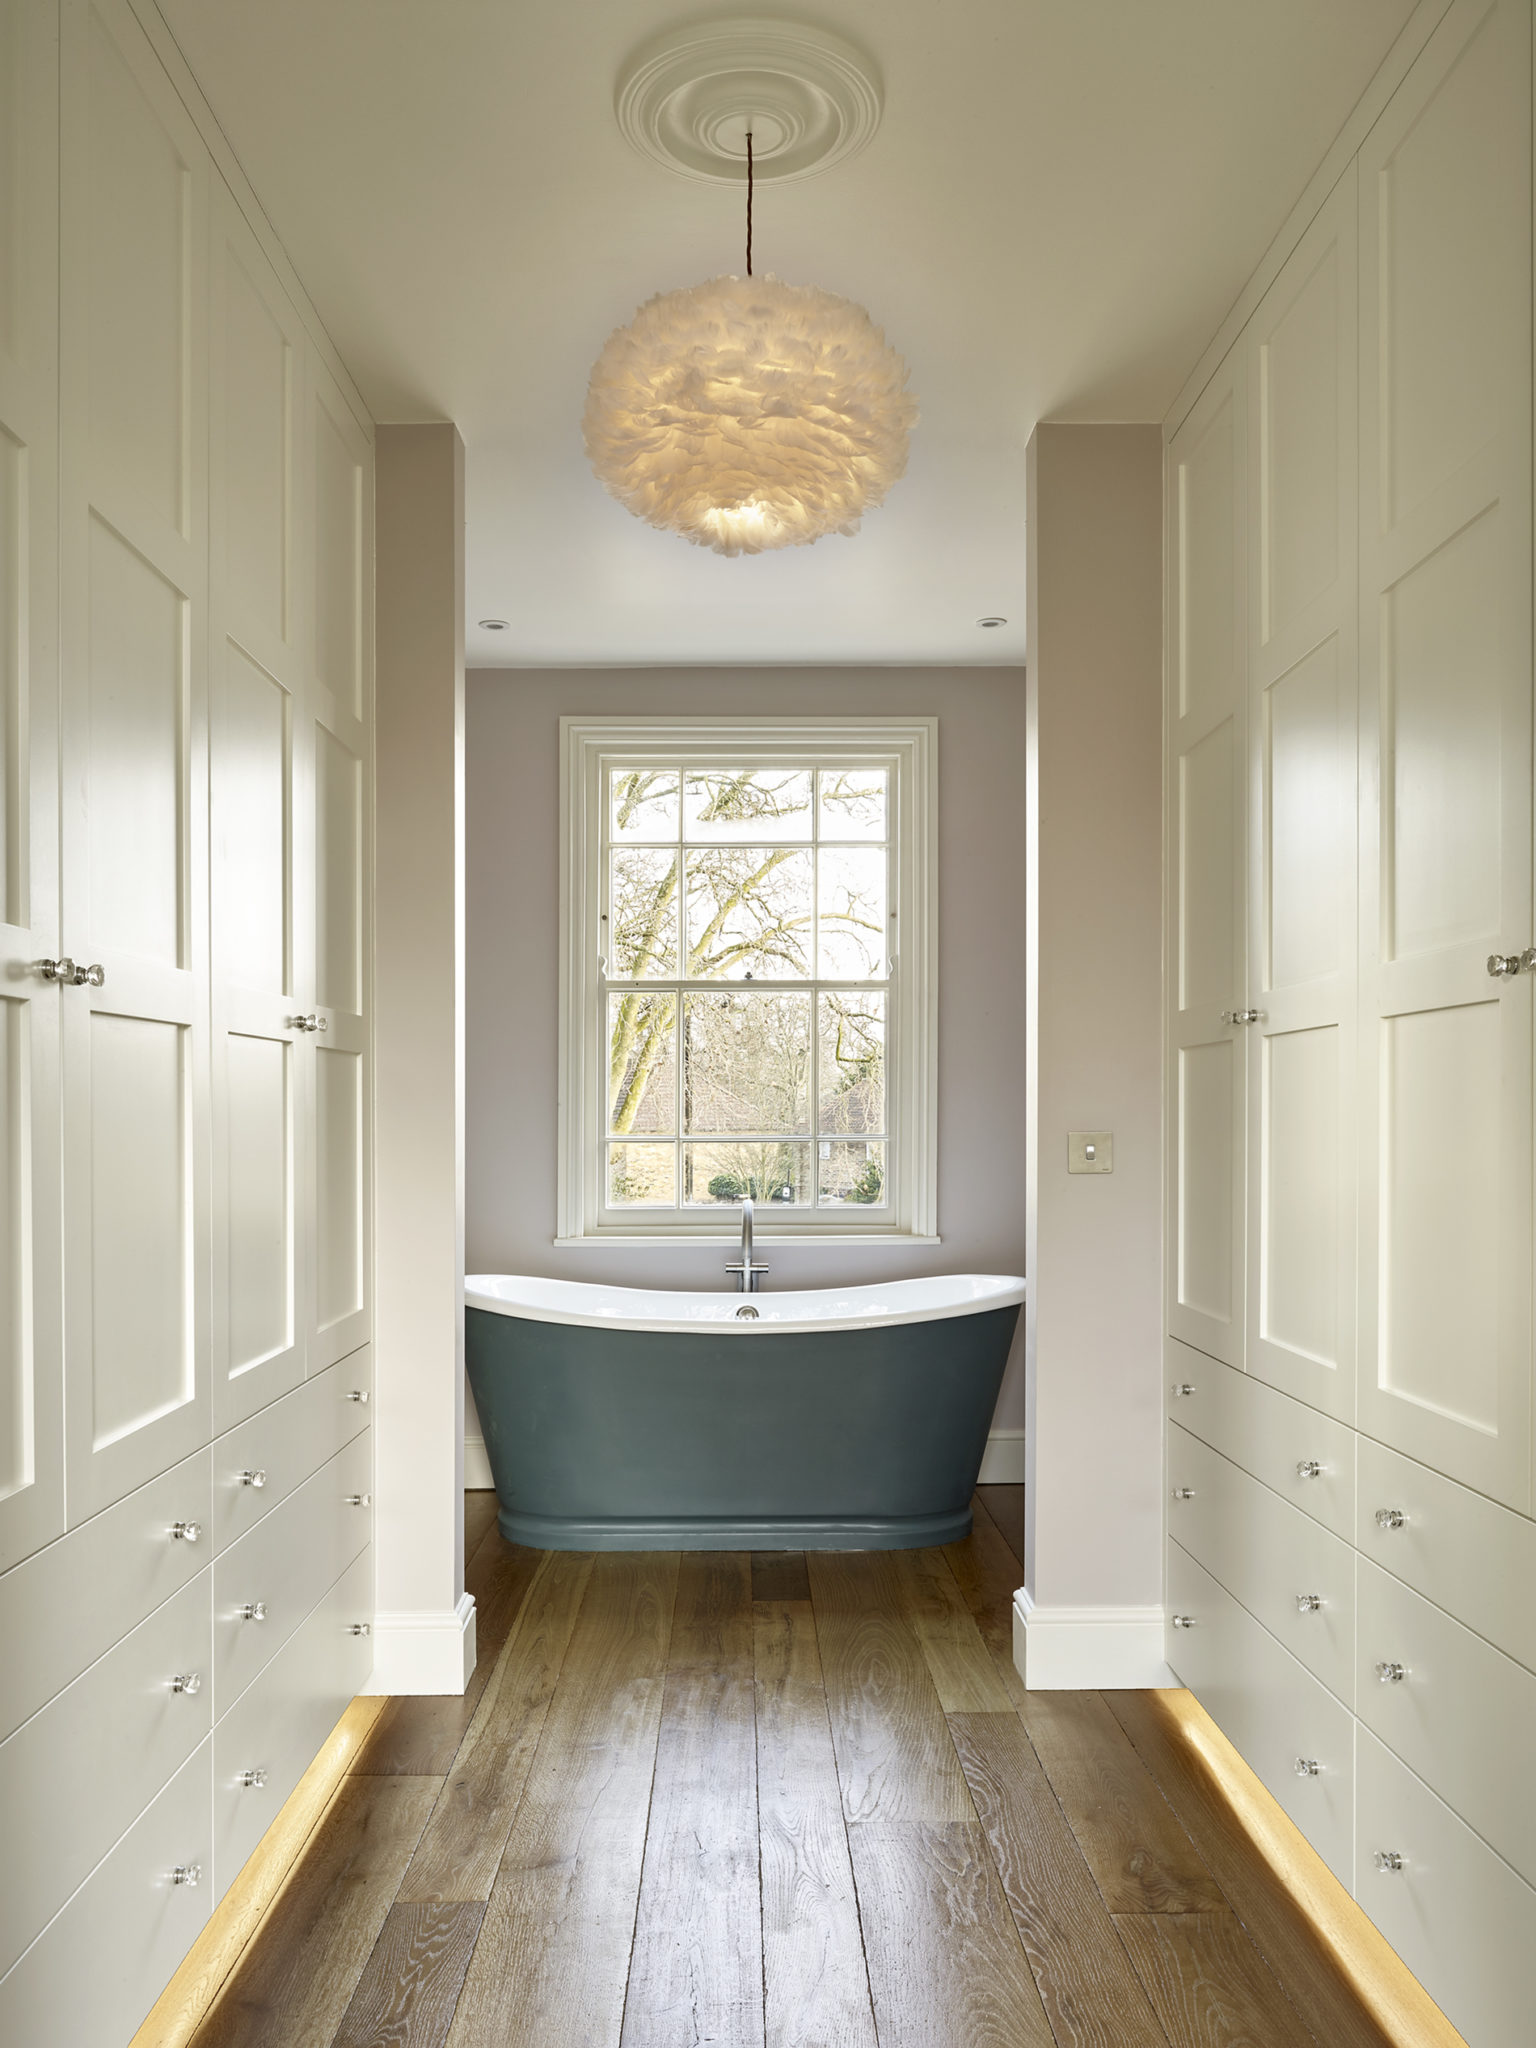 Ensuite dressing area with bespoke fitted wardrobes for London home